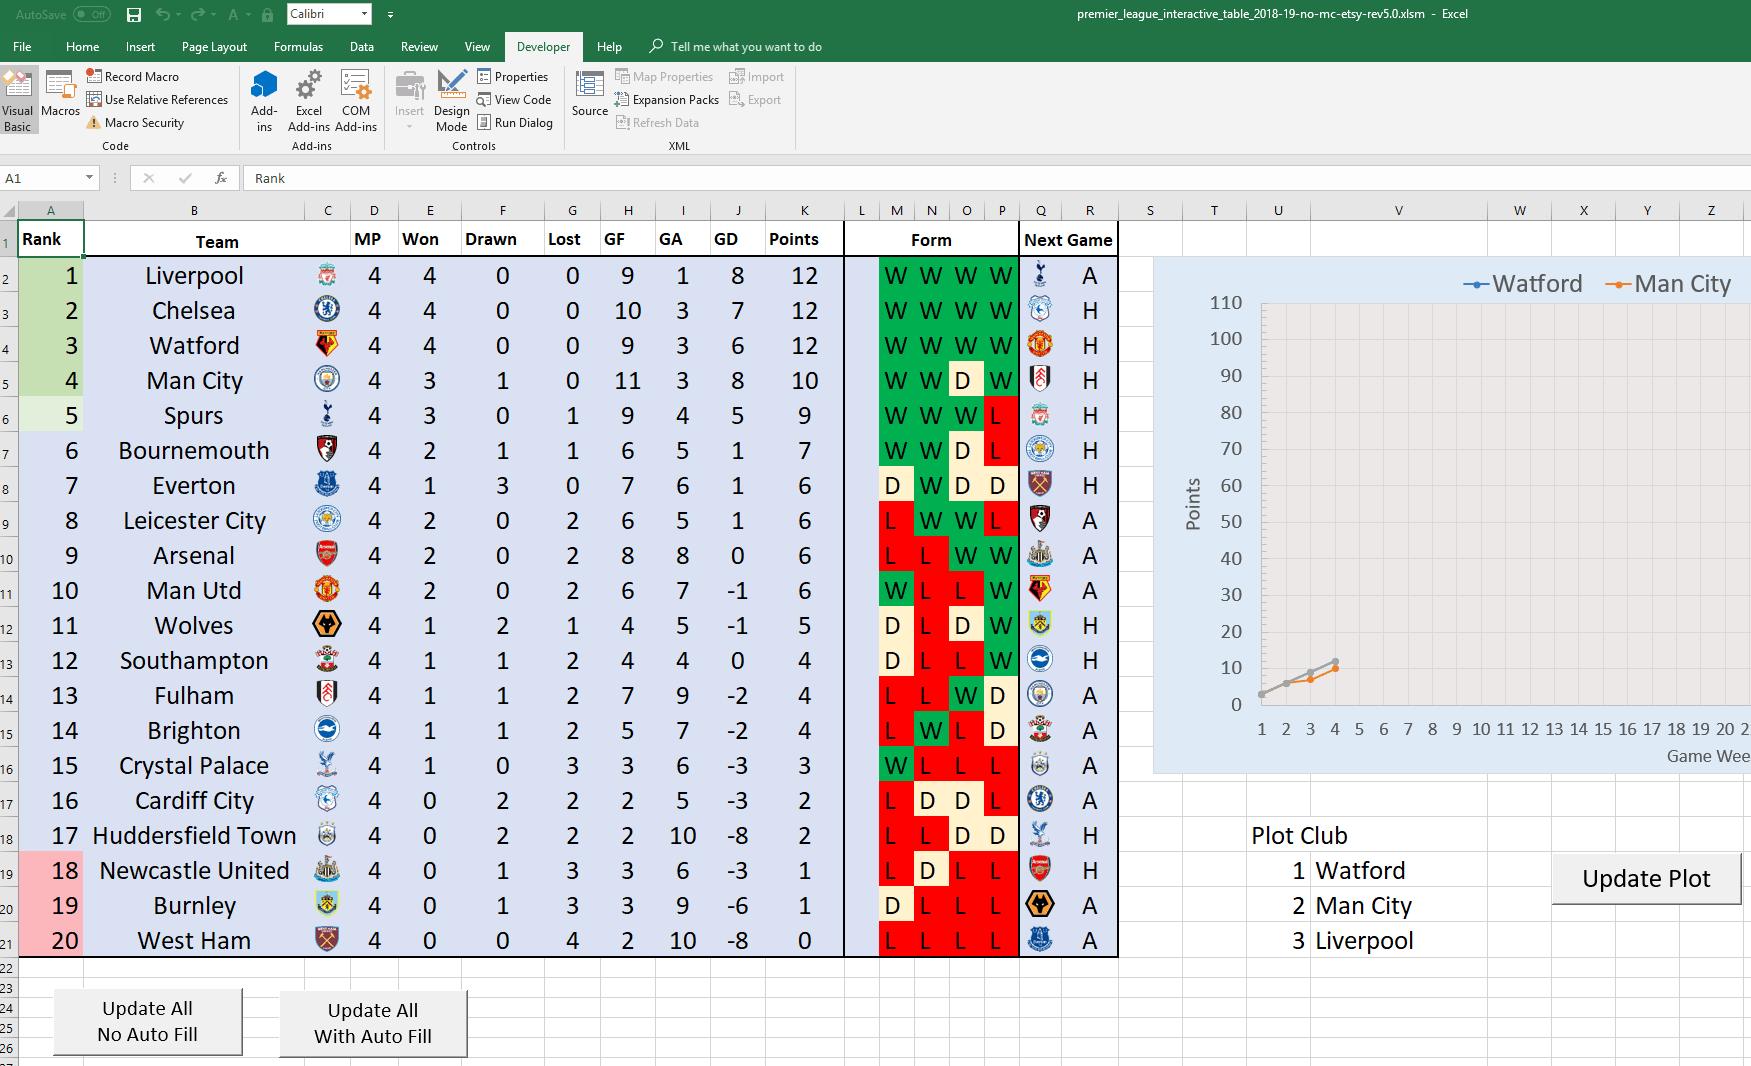 Interactive Premier League 2018/19 Table in Excel Download - The